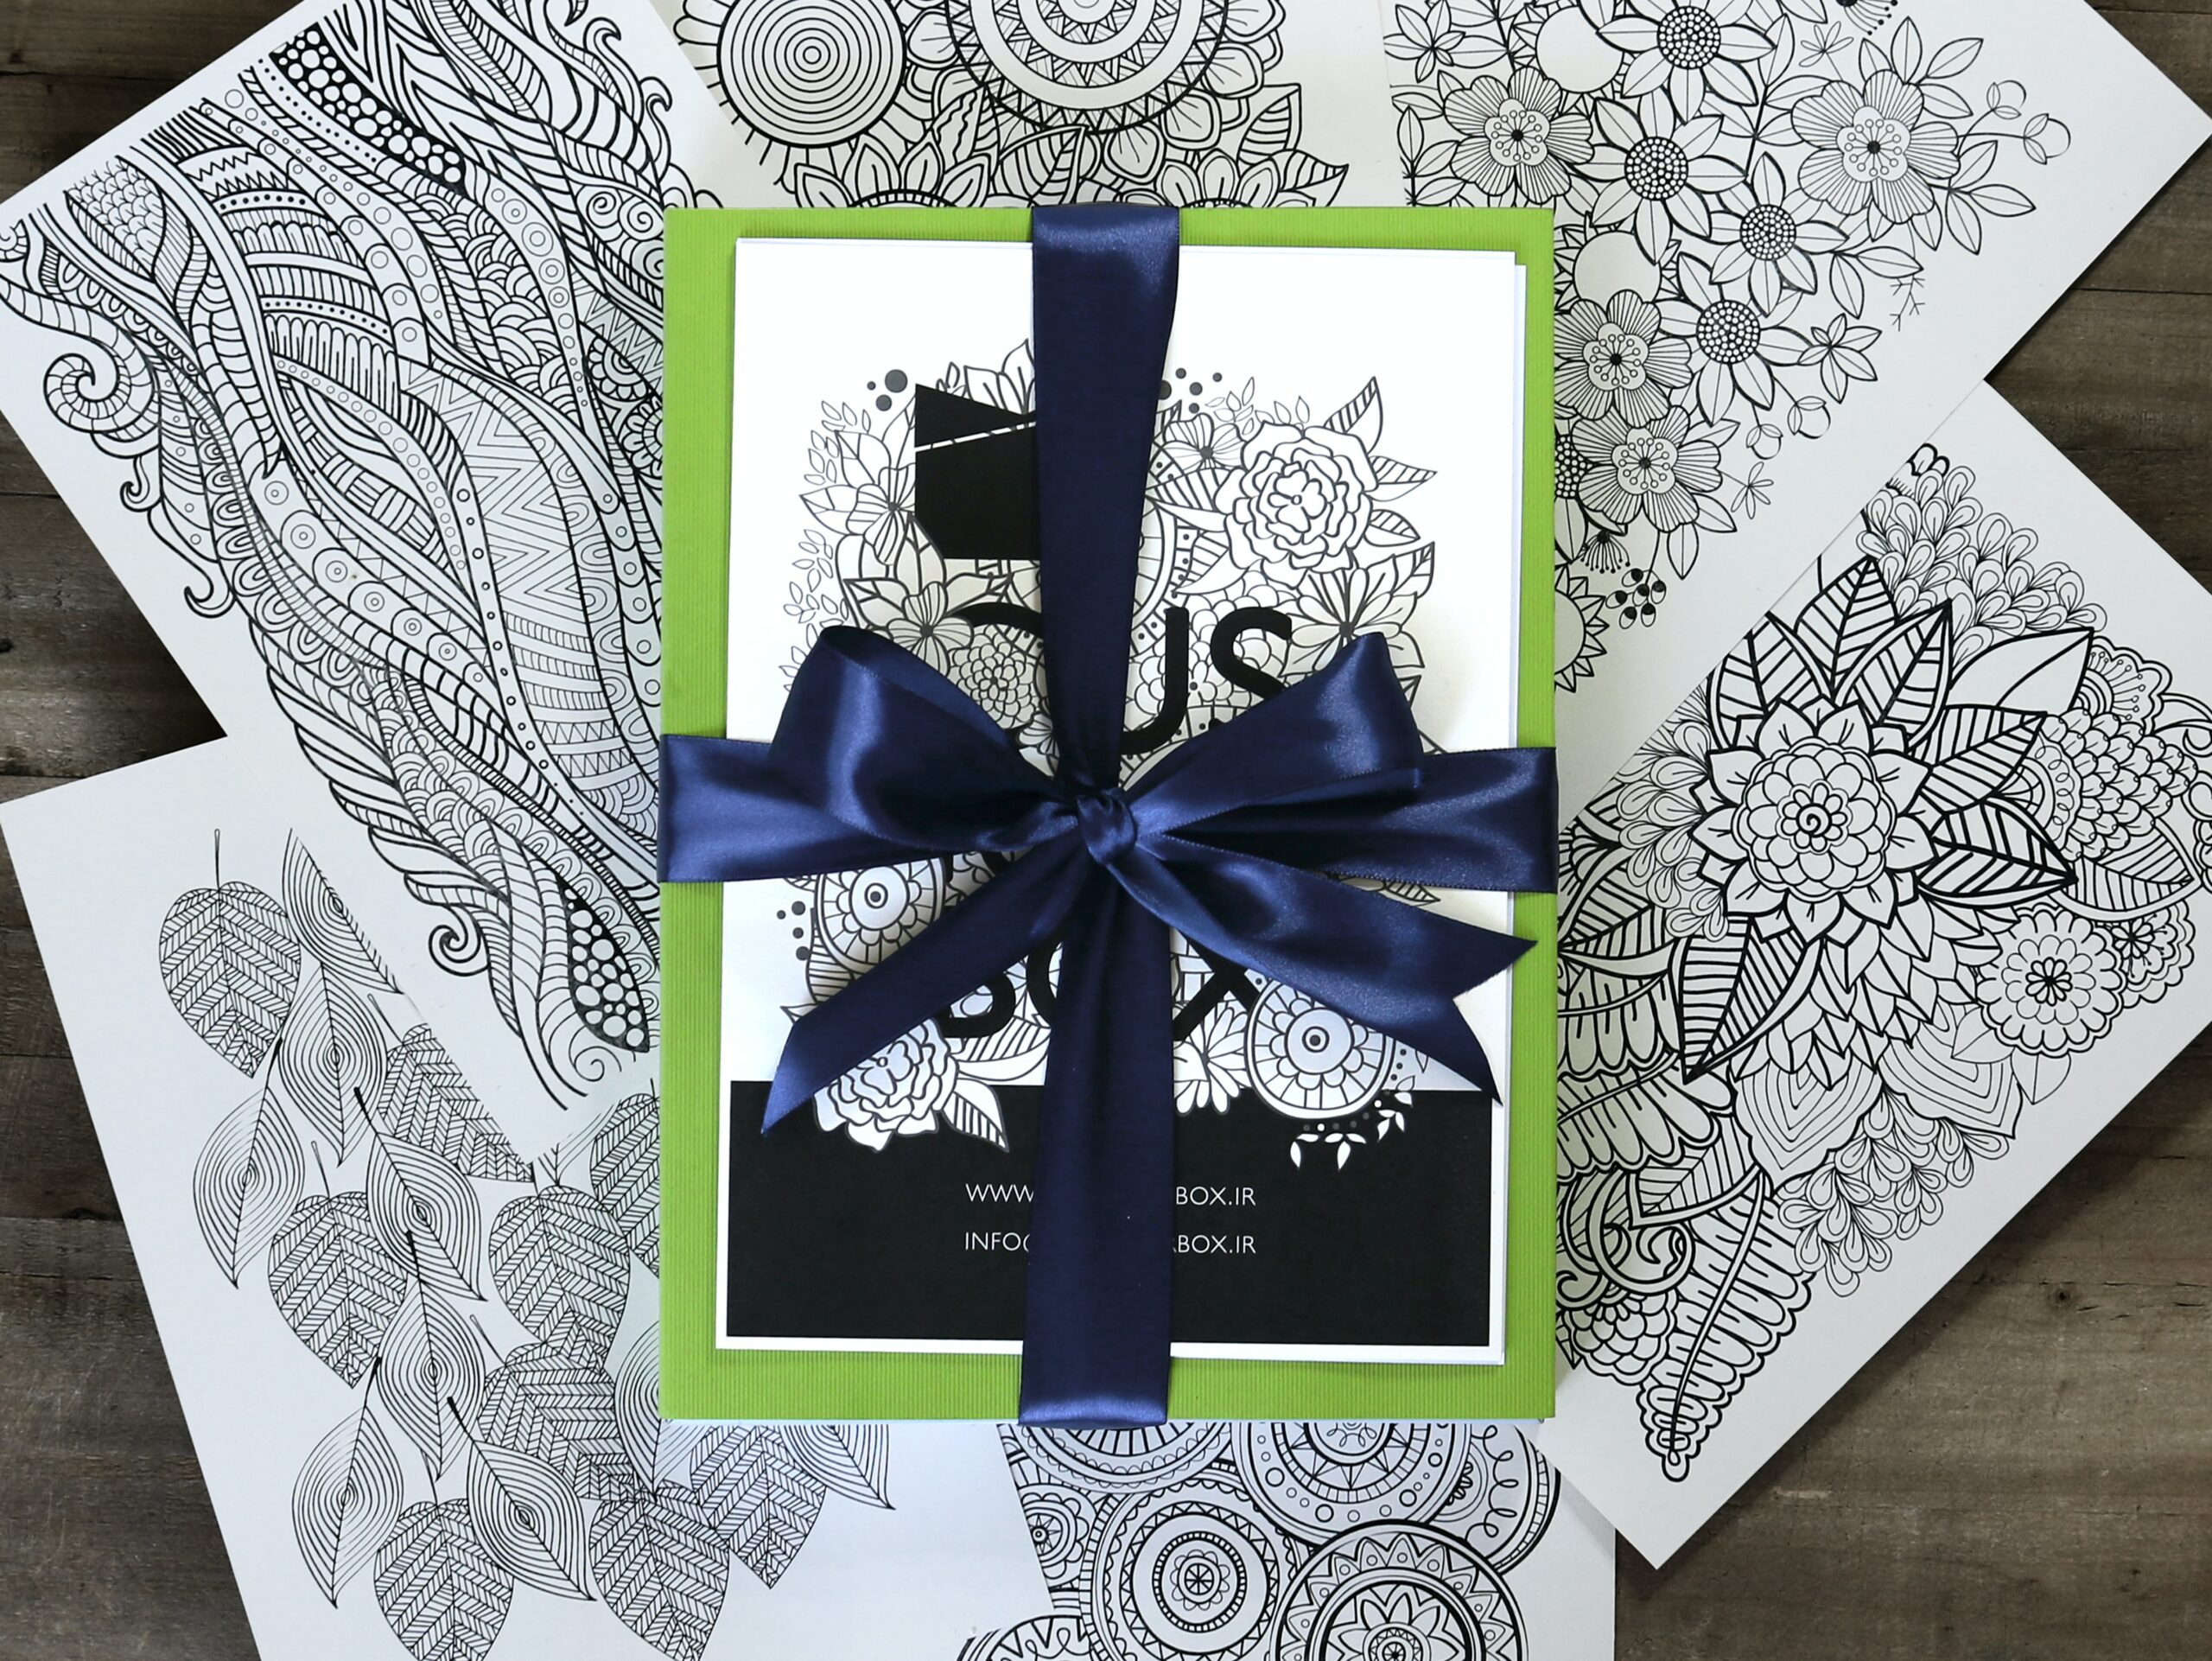 adult coloring books as a gift idea